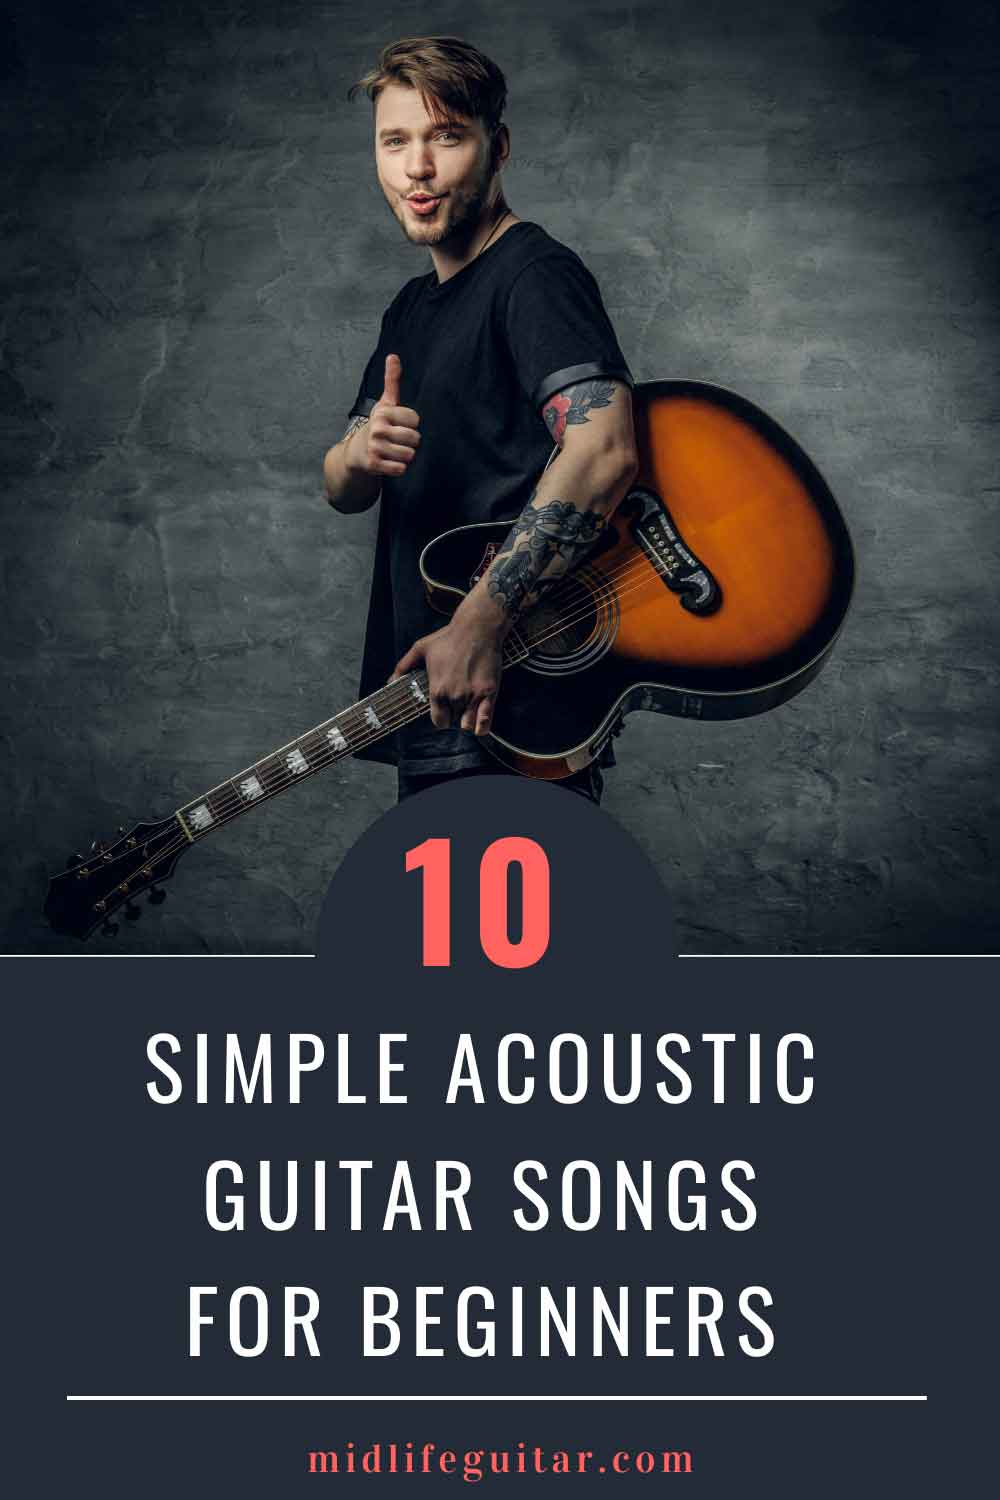 Simple Acoustic Guitar Songs For Beginners